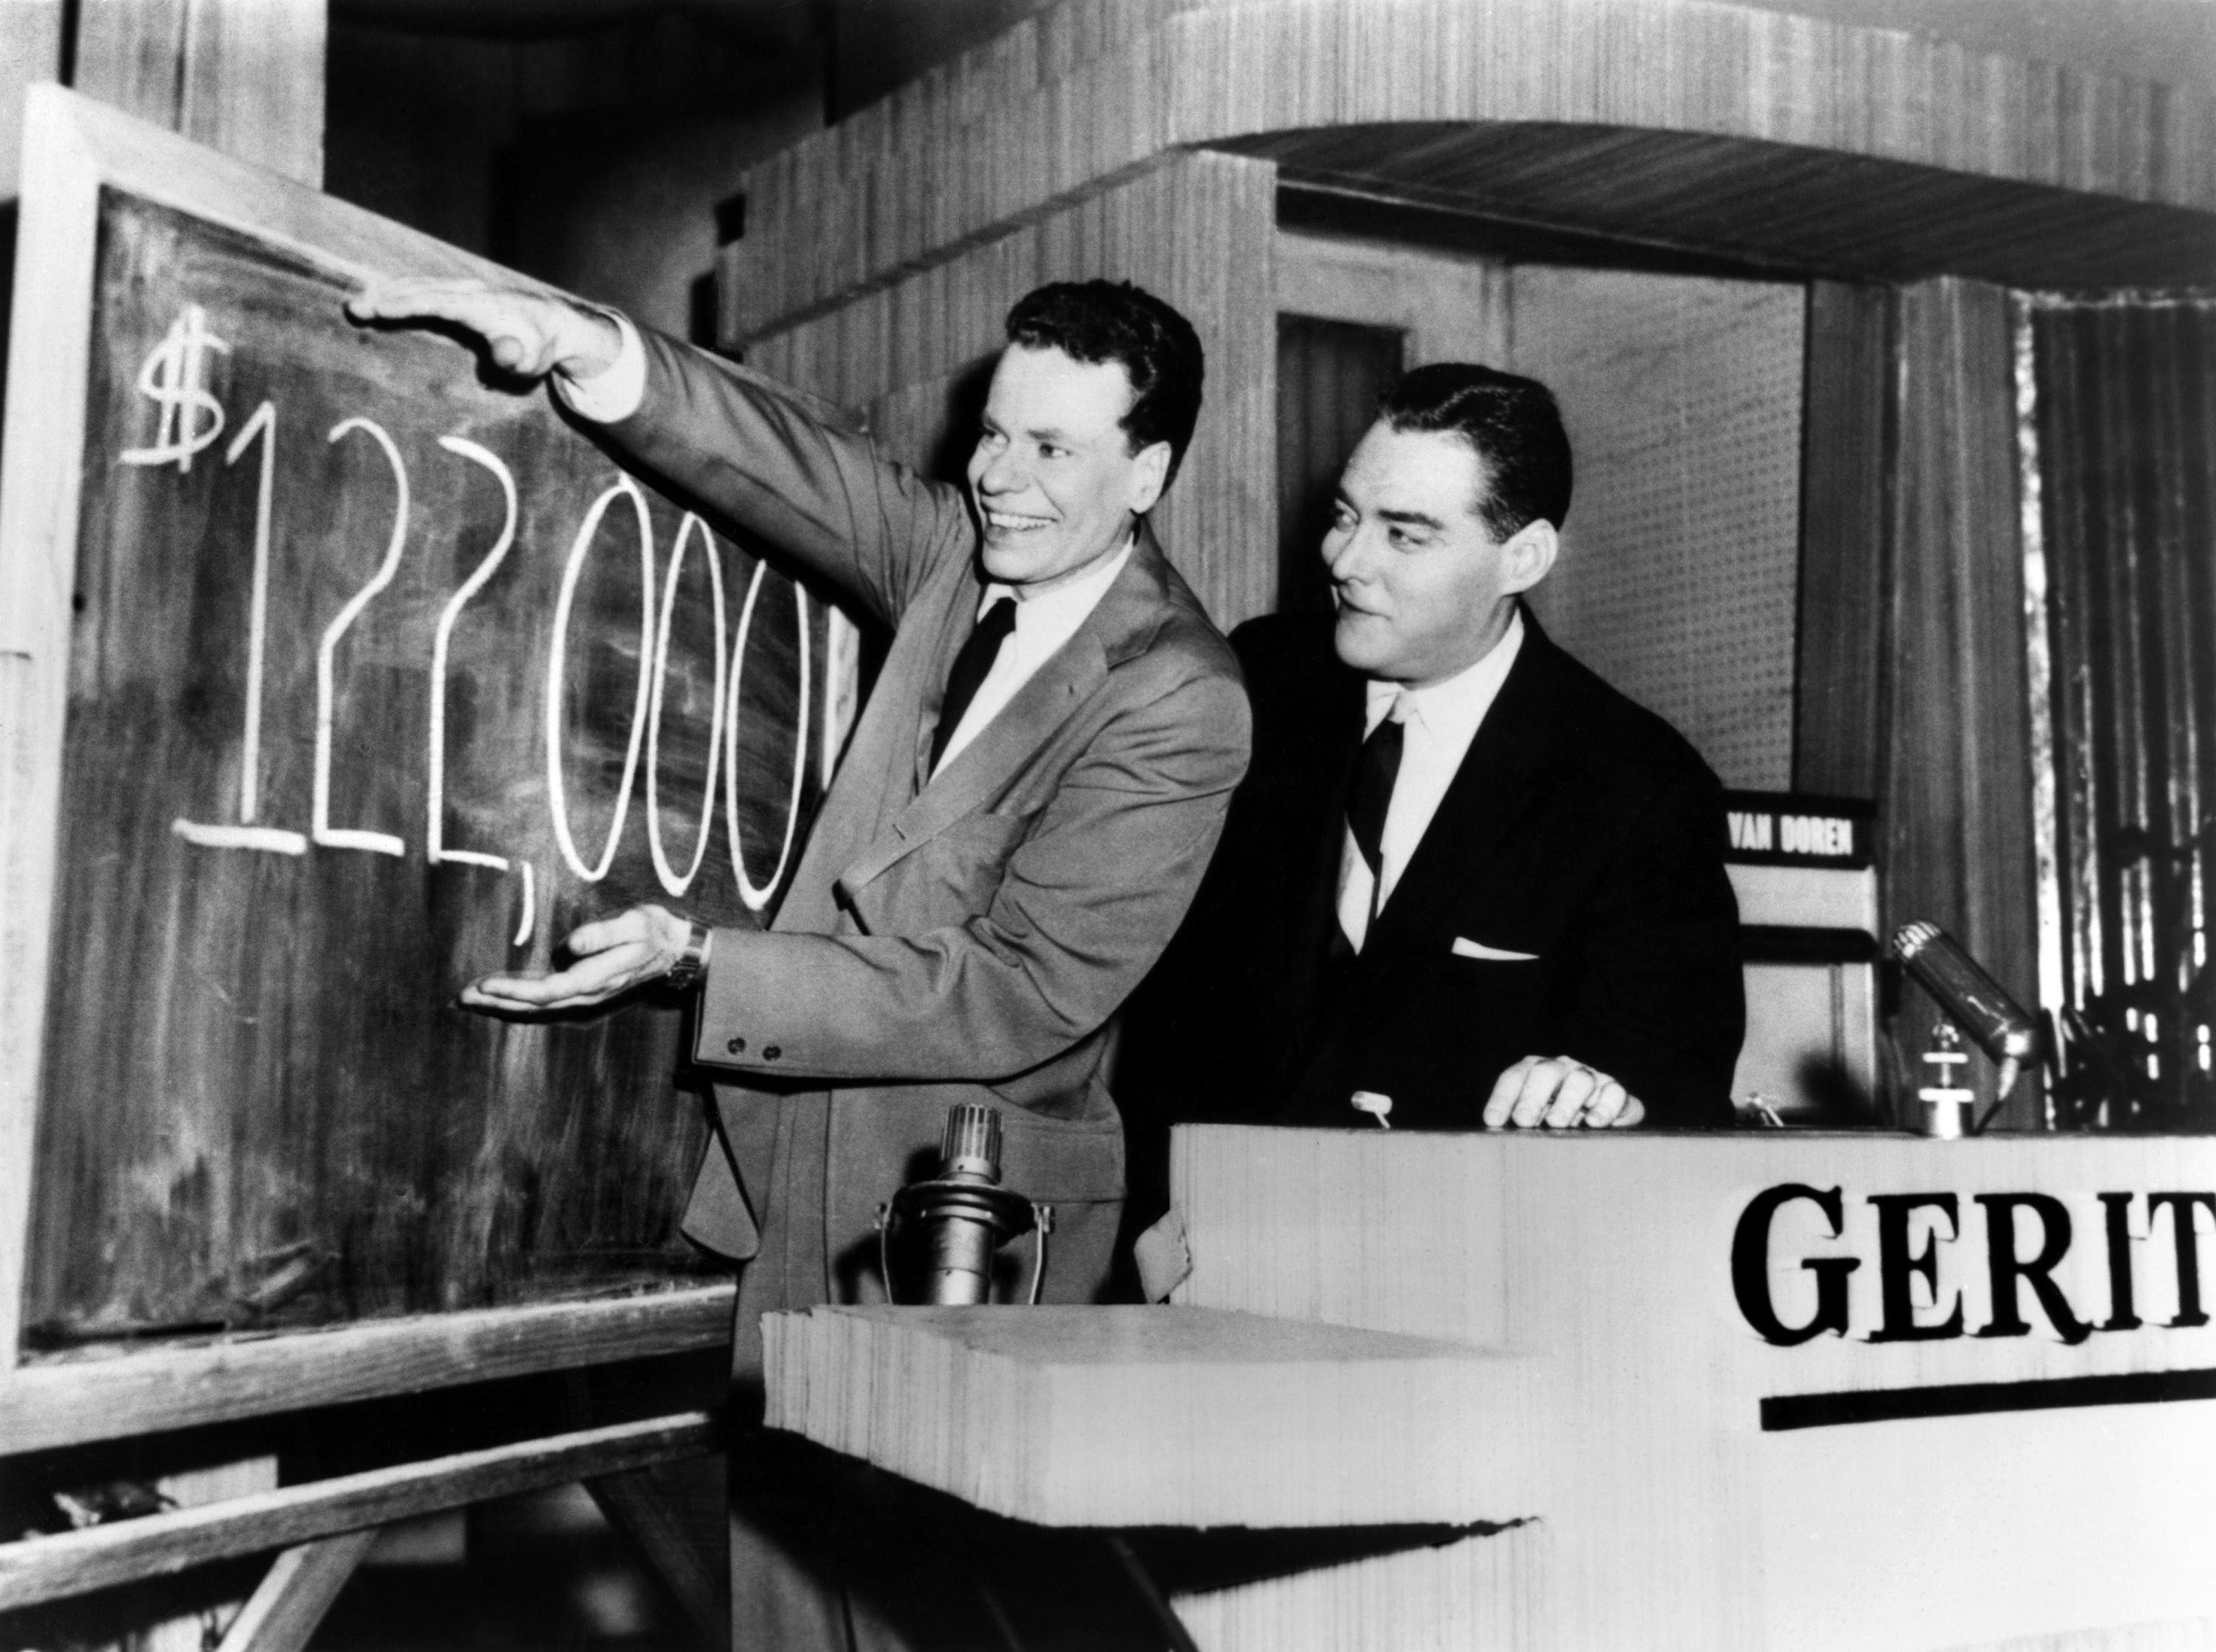 Van Doren standing next to a blackboard displaying his winnings, which were at that point $122,000